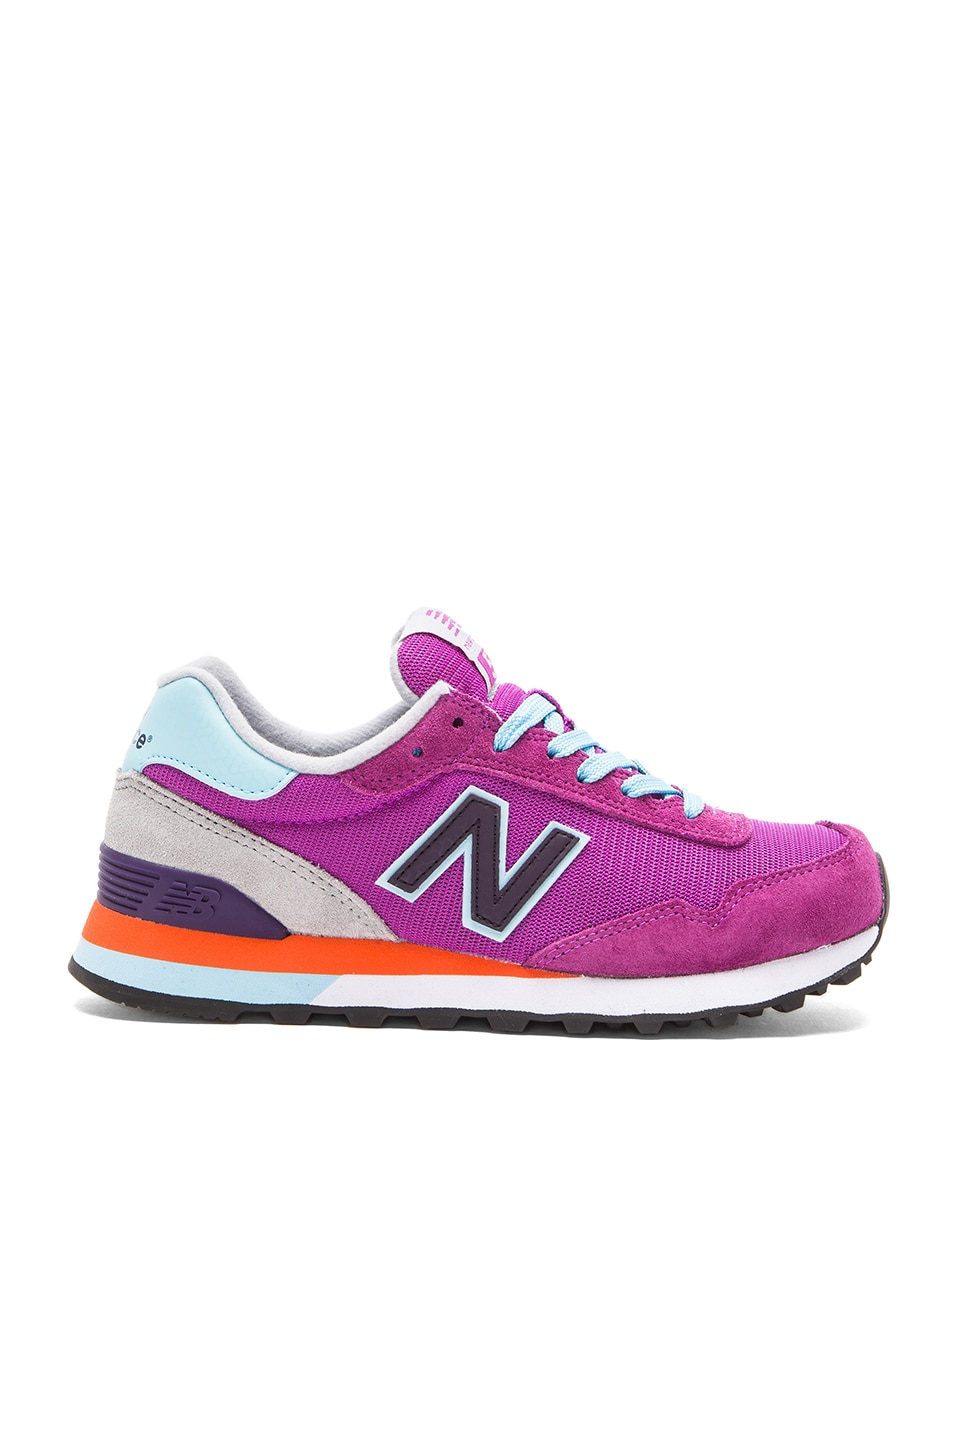 New Balance Modern Classics Sneaker in Voltage Violet